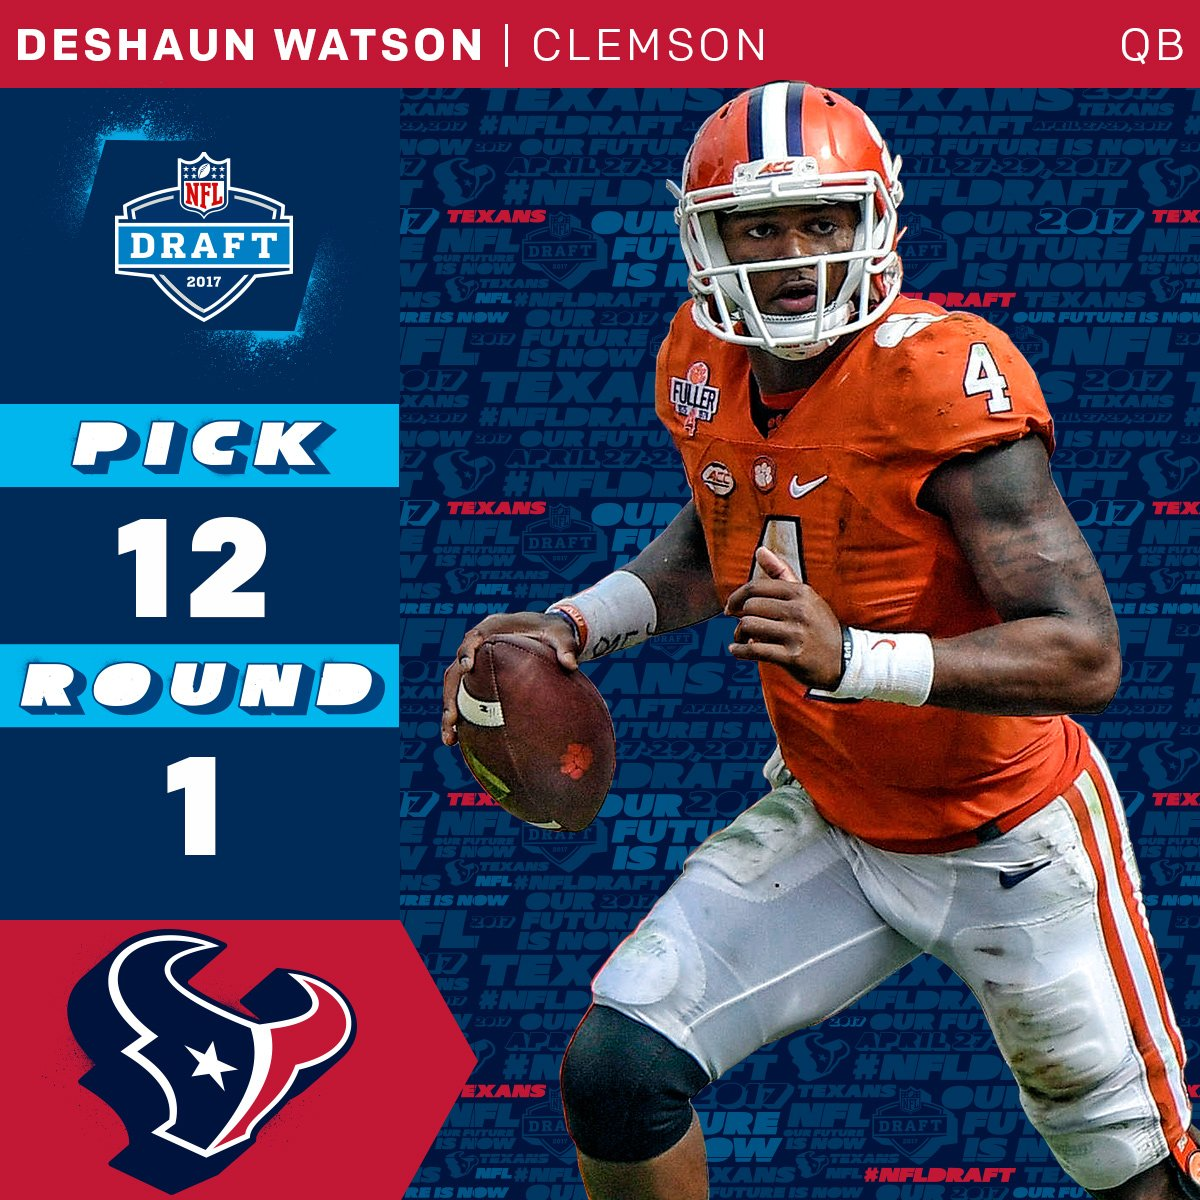 The @HoustonTexans trade up to select @ClemsonFB QB @DeshaunWatson4 with the #12 overall pick!   #NFLDraft